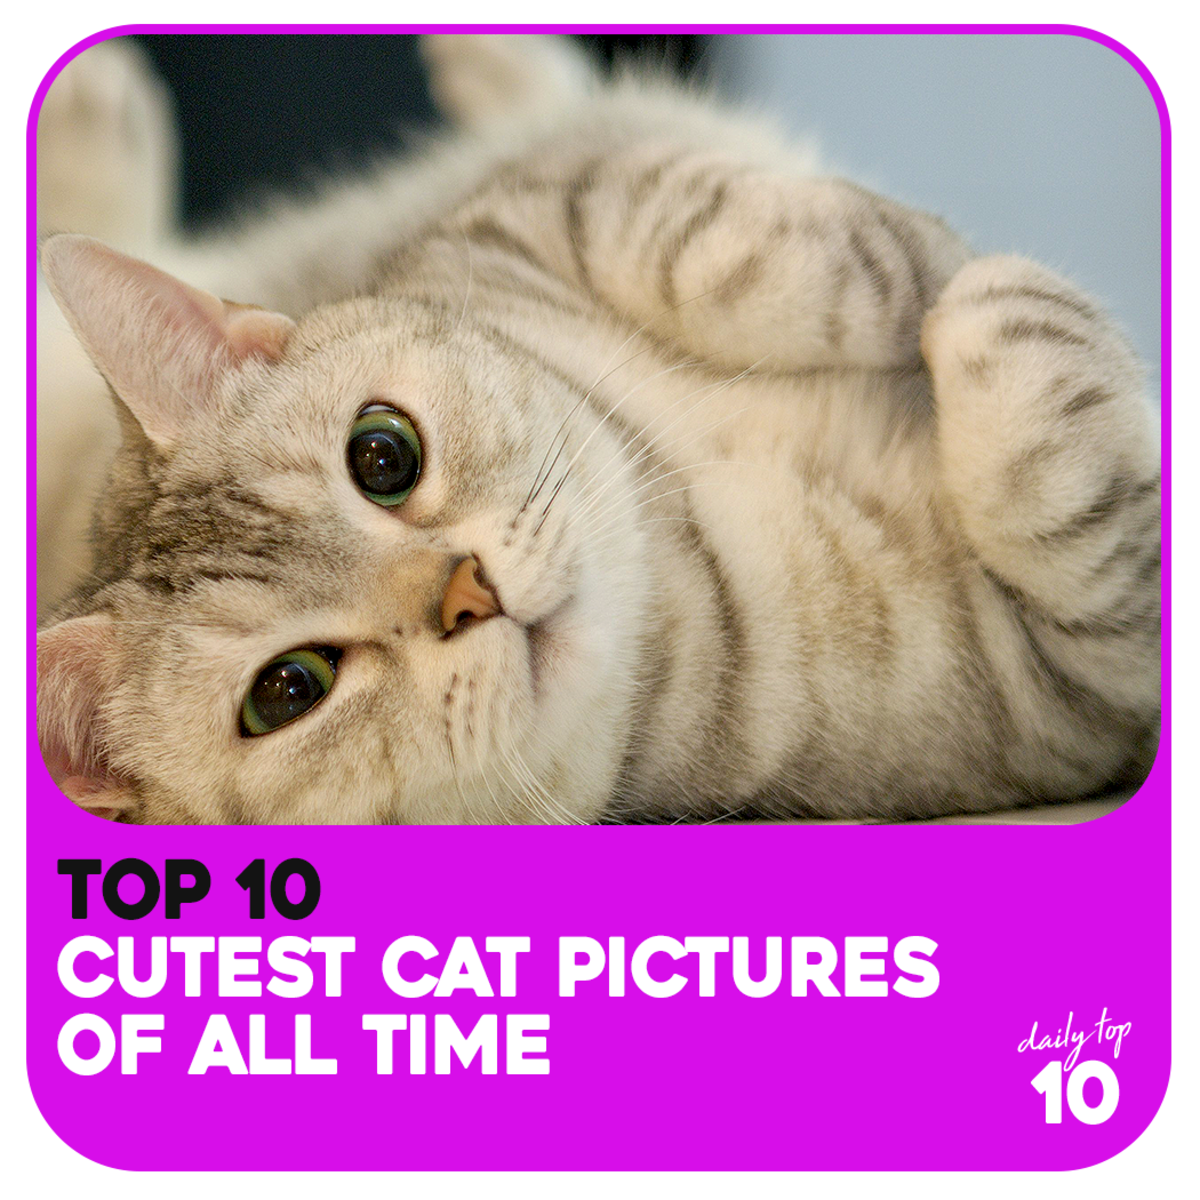 Top 10 Cutest Cat Pictures of All Time (Plus Honorable Mentions)